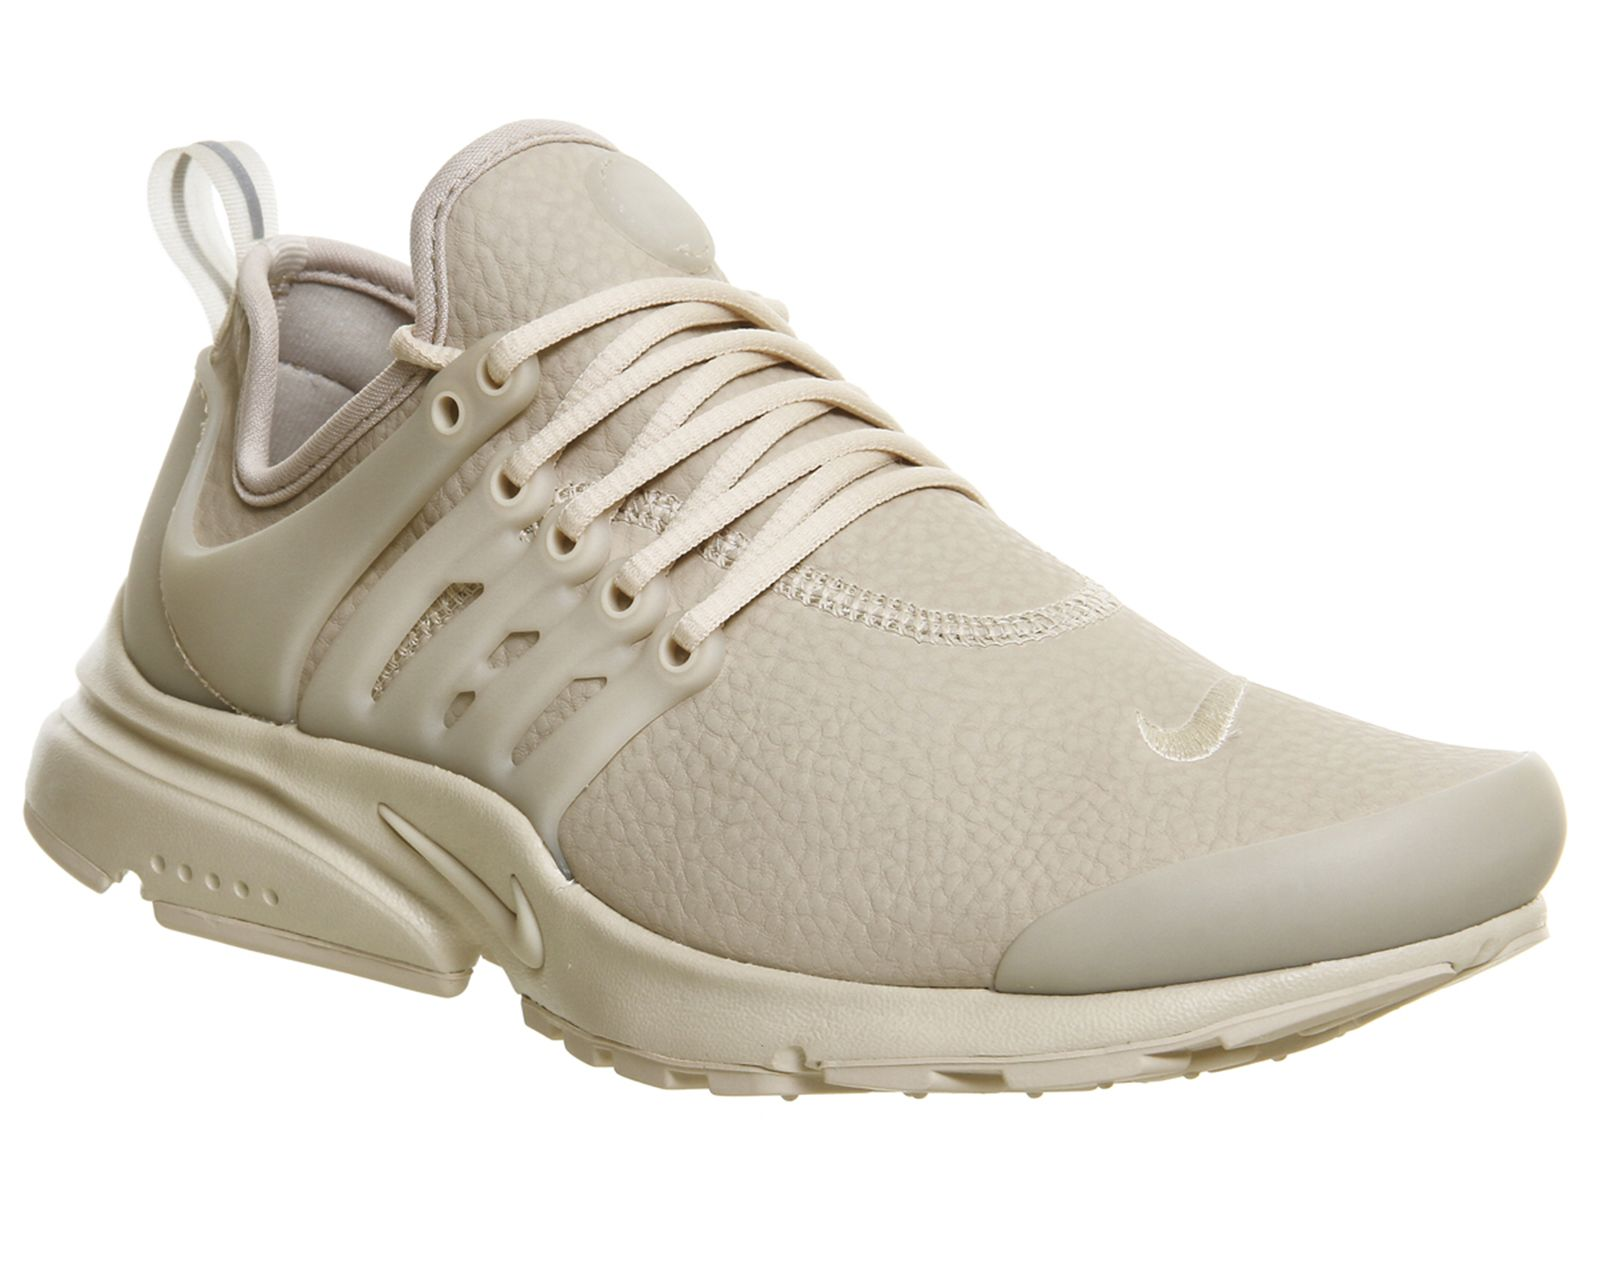 great fit on feet images of sale retailer Nike Air Presto Oatmeal Mono Prm | Nike | Adidas sneakers ...